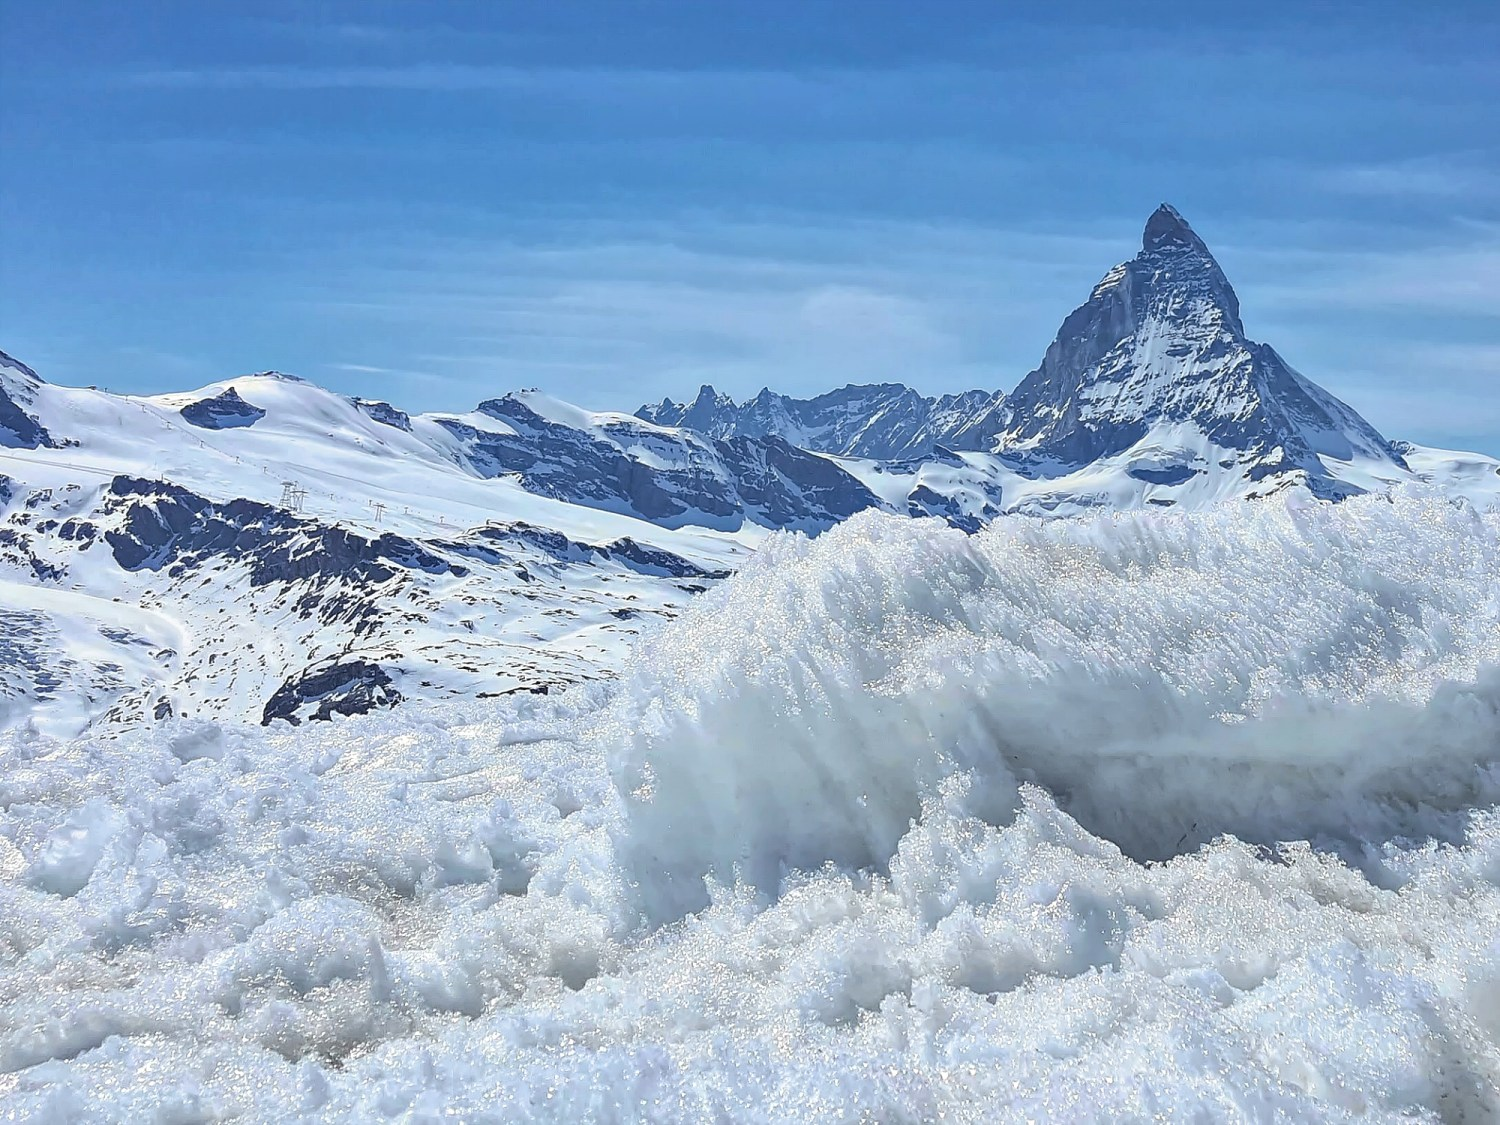 View of Matterhorn Zermatt from behind a bank of snow.